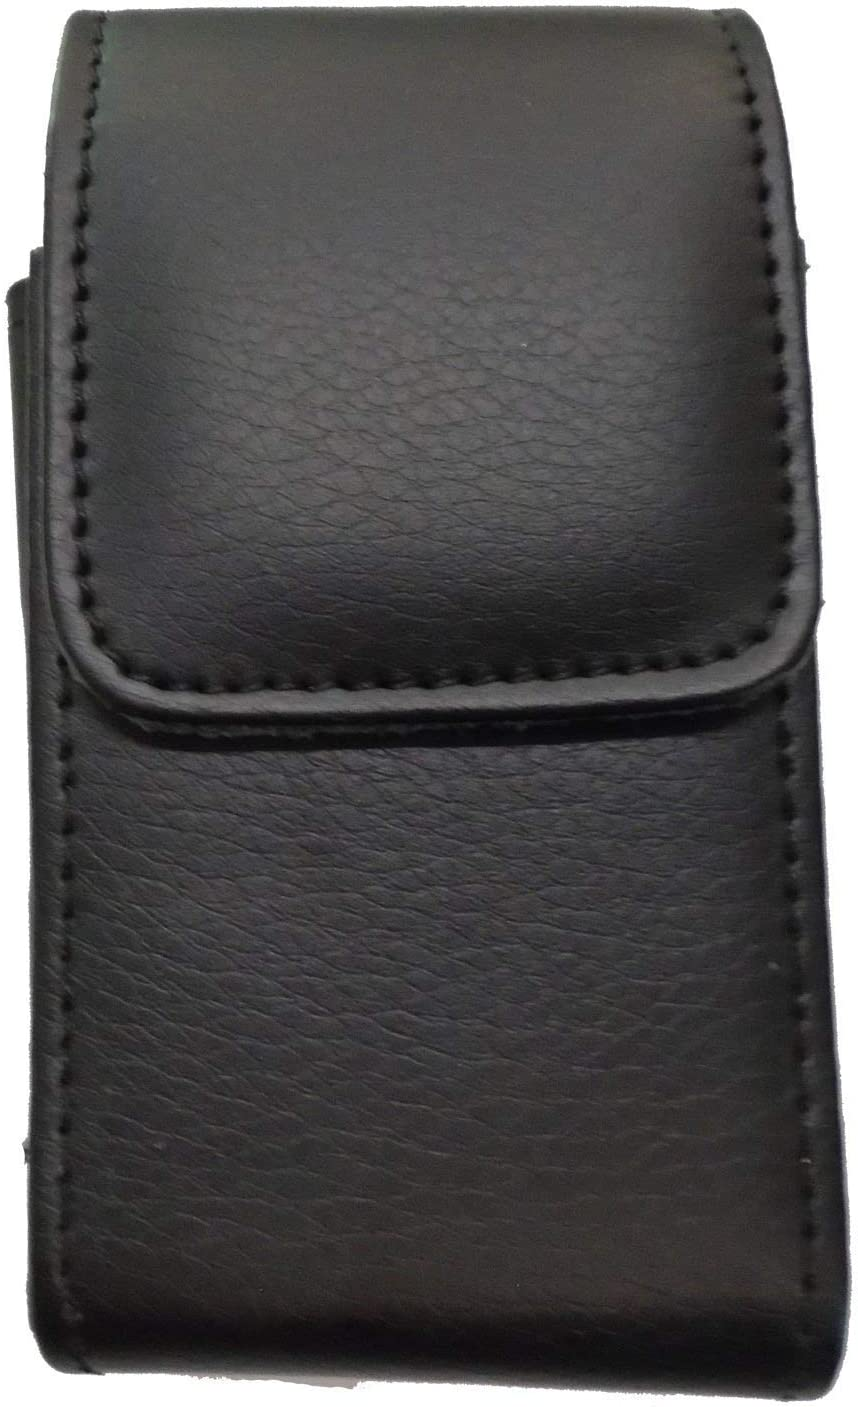 Vertical Black Leather Case with Magnetic Closure and Belt Loops fits Tracfone LG Classic L125DL Flip Phone